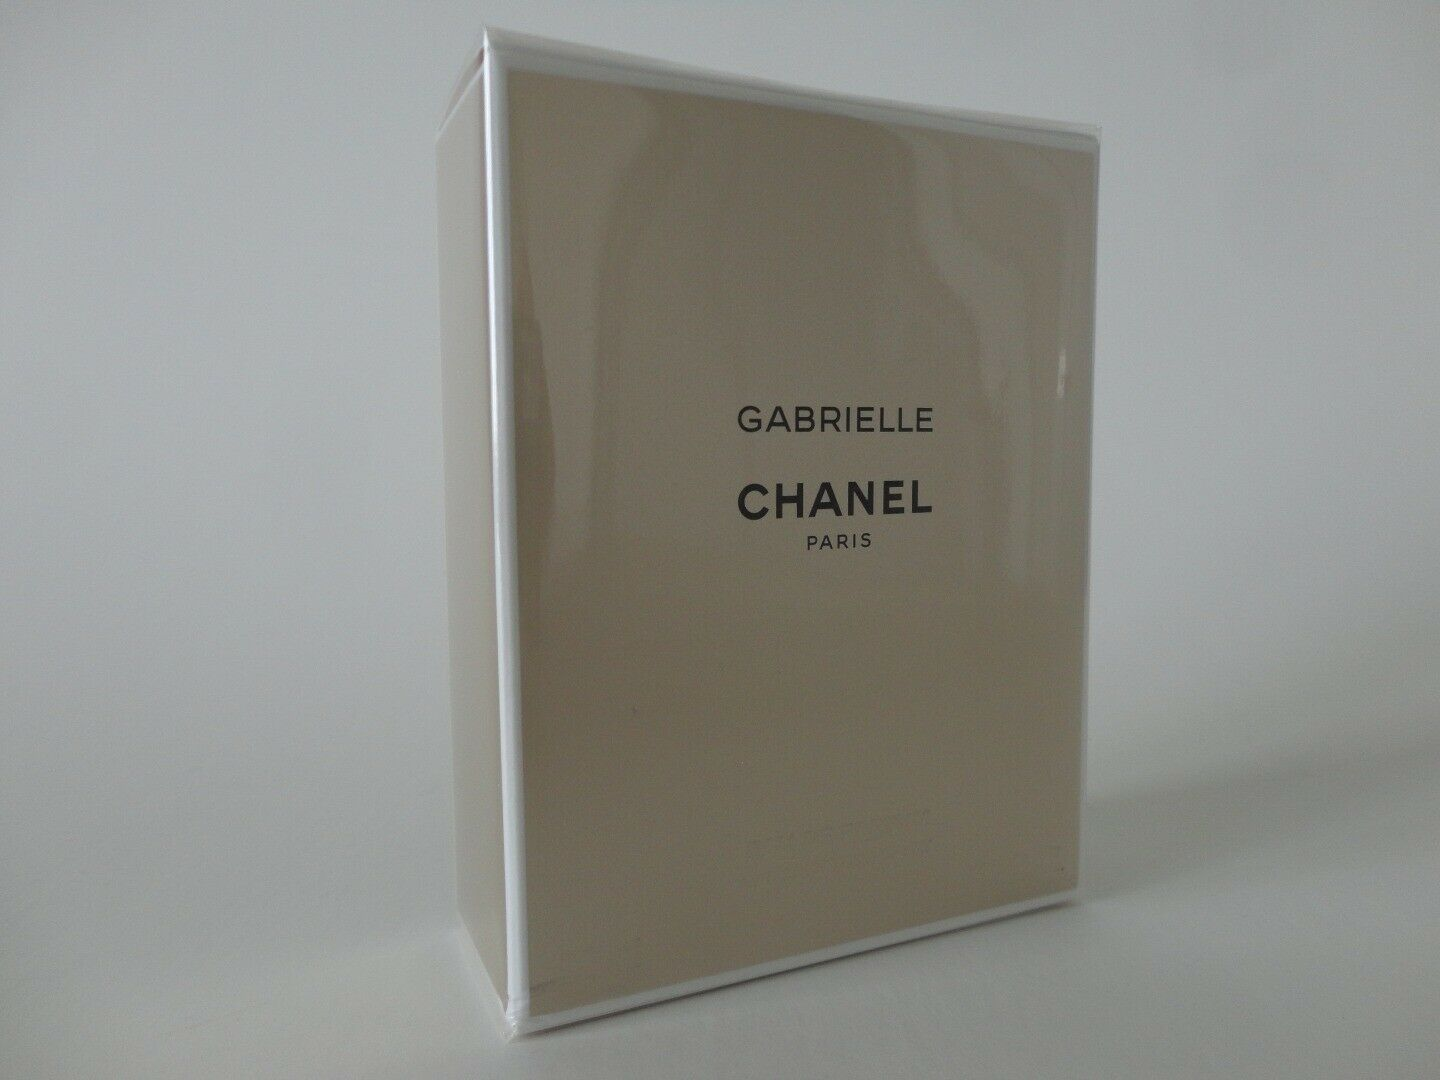 NIB CHANEL Gabrielle Eau De Parfum Perfume 50ml / 1.7Fl Oz Sealed